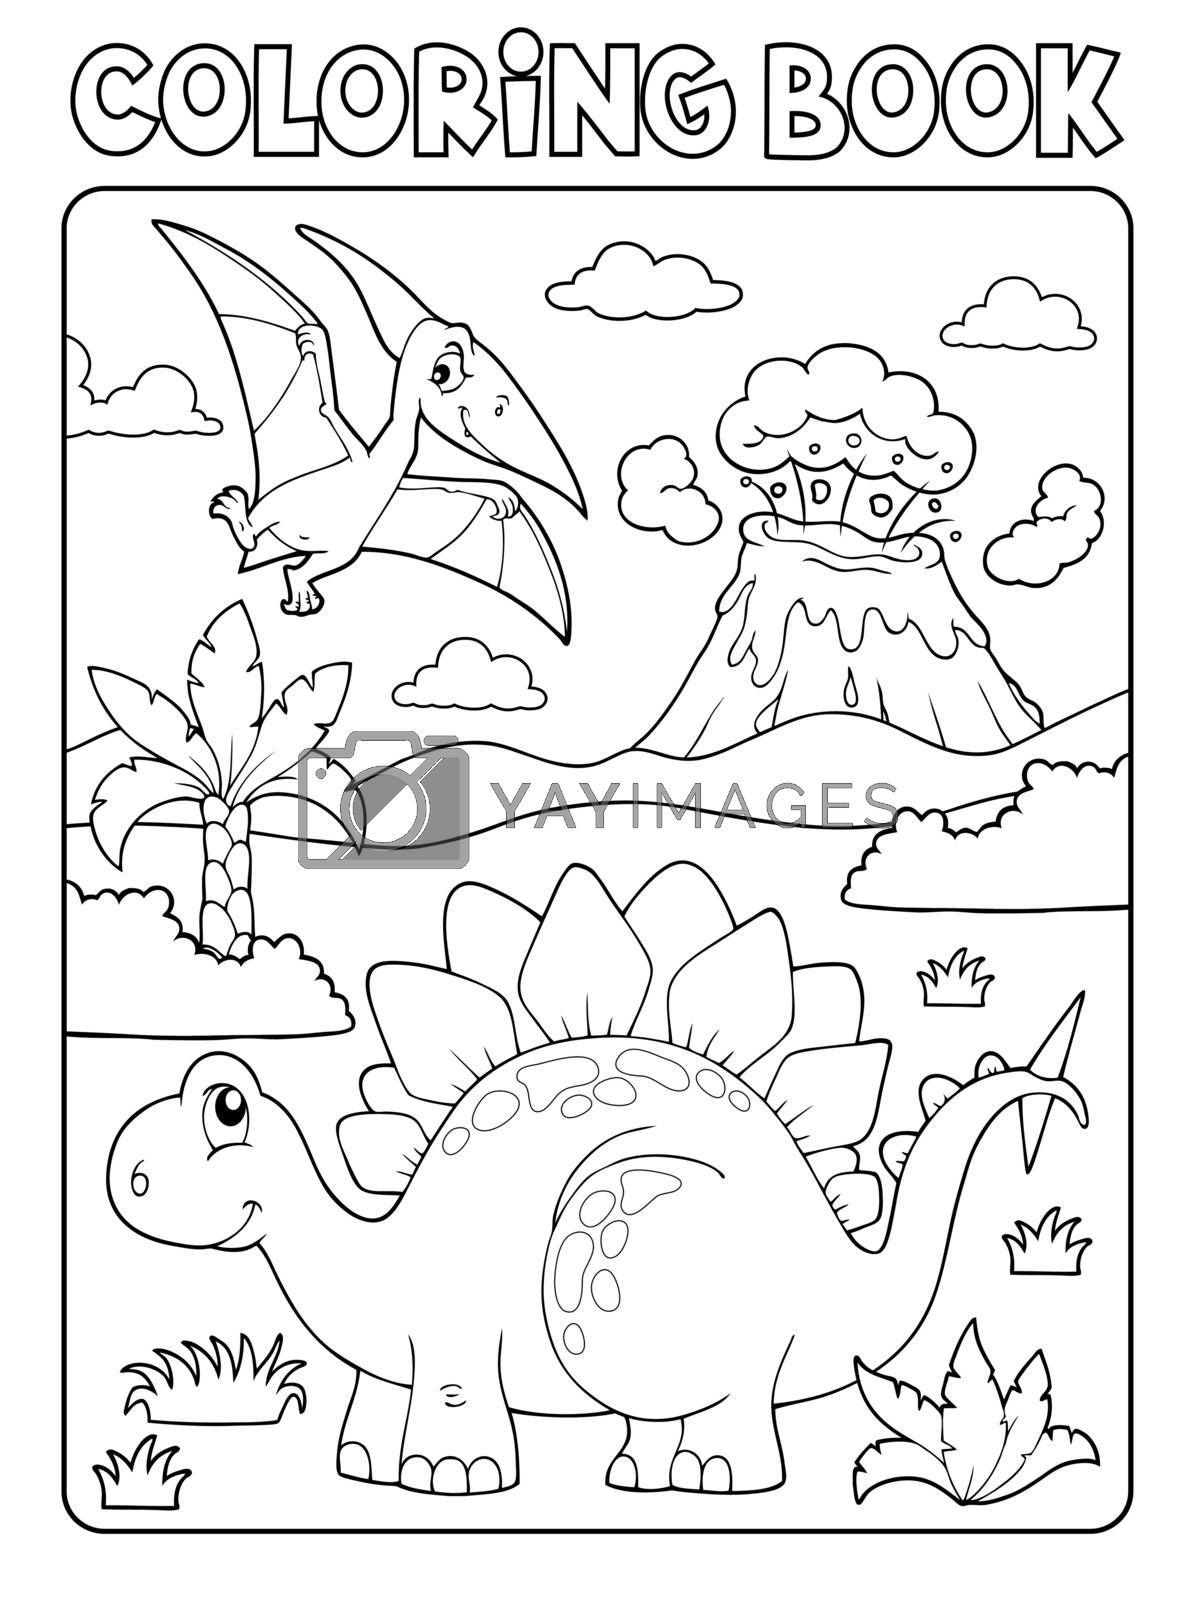 Coloring book dinosaur composition image 1 - eps10 vector illustration.